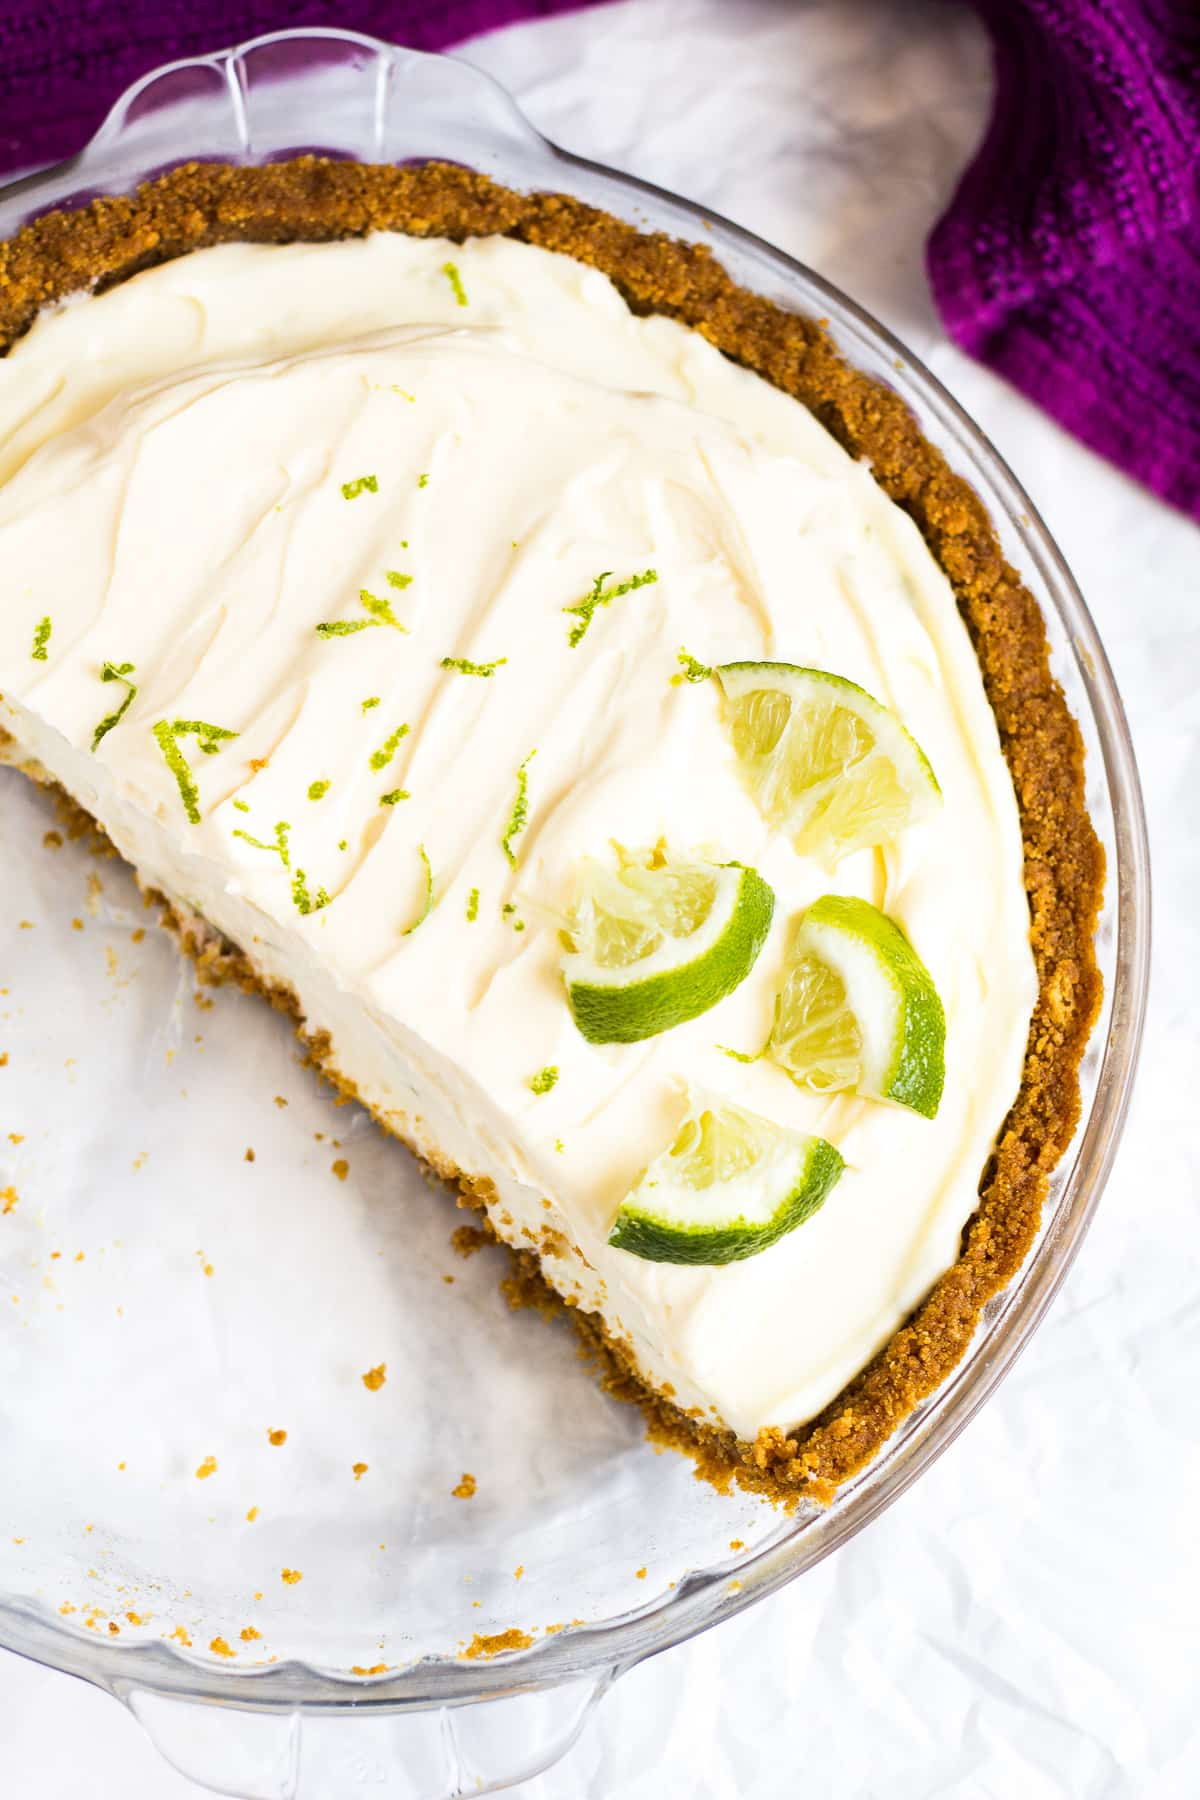 Overhead shot of half of a no-bake key lime pie in a glass pie dish.